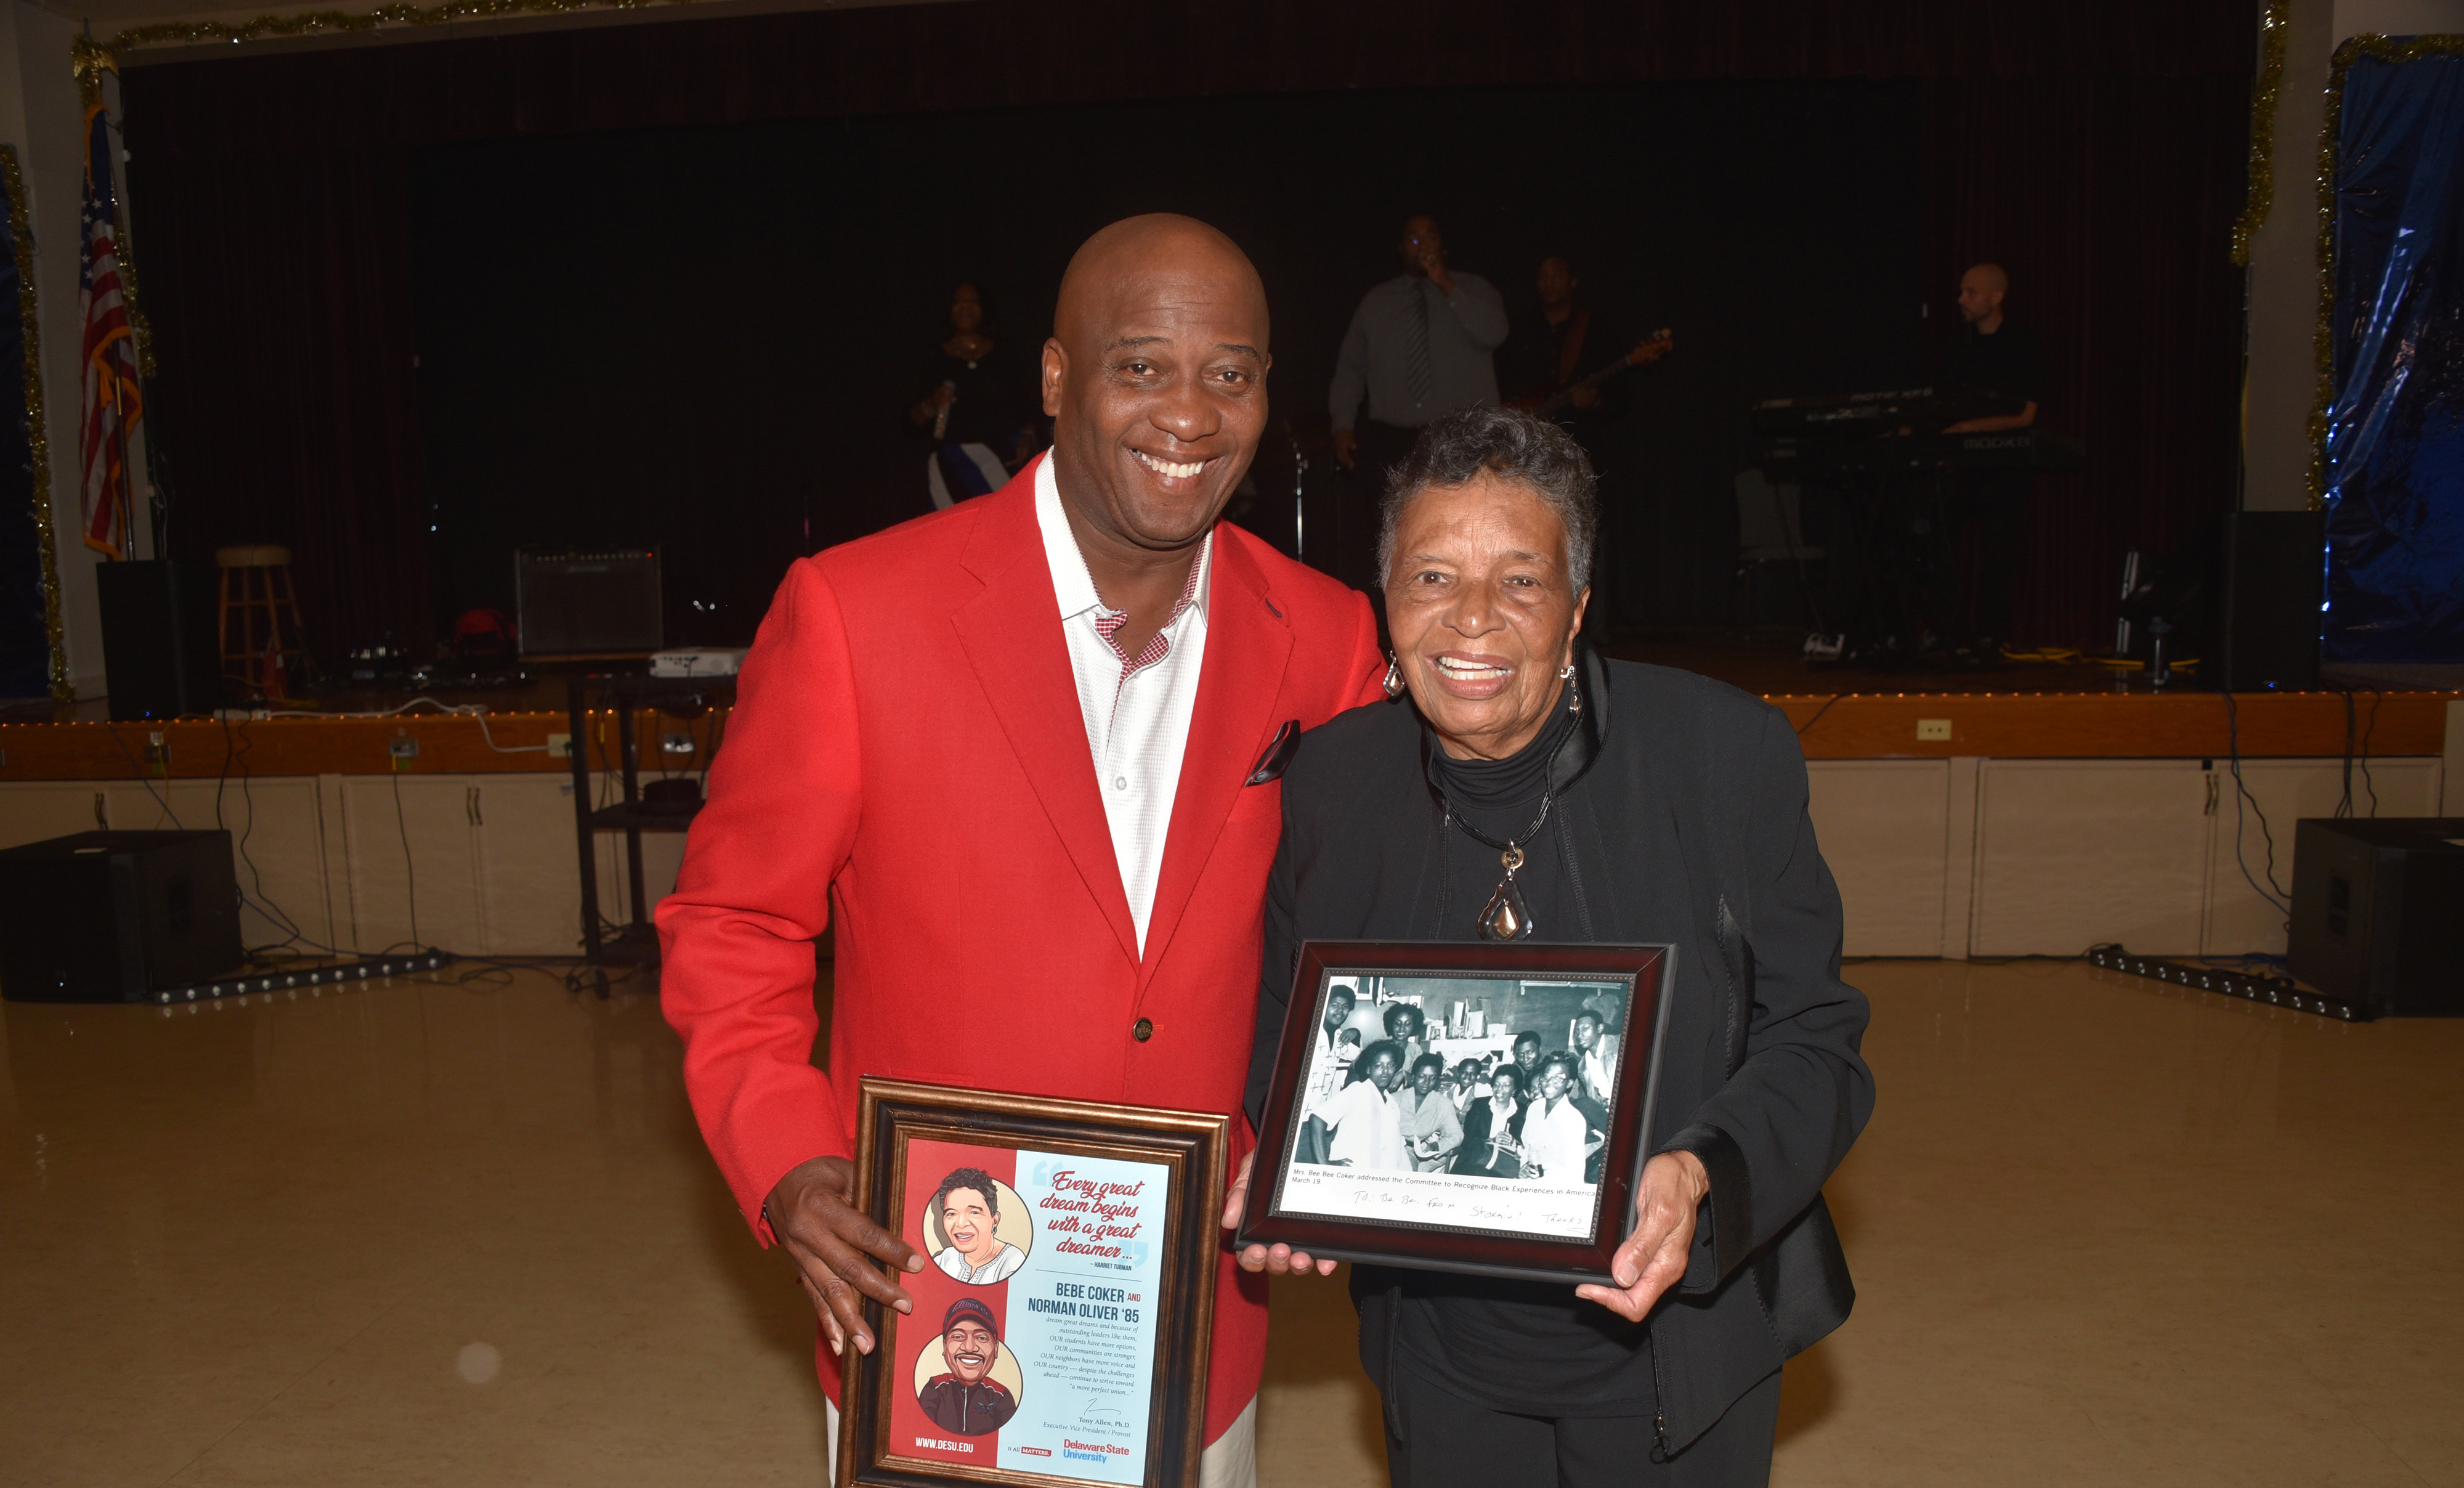 Norman Oliver and Dr. Bebe Coker each received the Early College High School's Honoring Our Legacy Award during the charter school's Oct. 25 annual fundraising dinner.